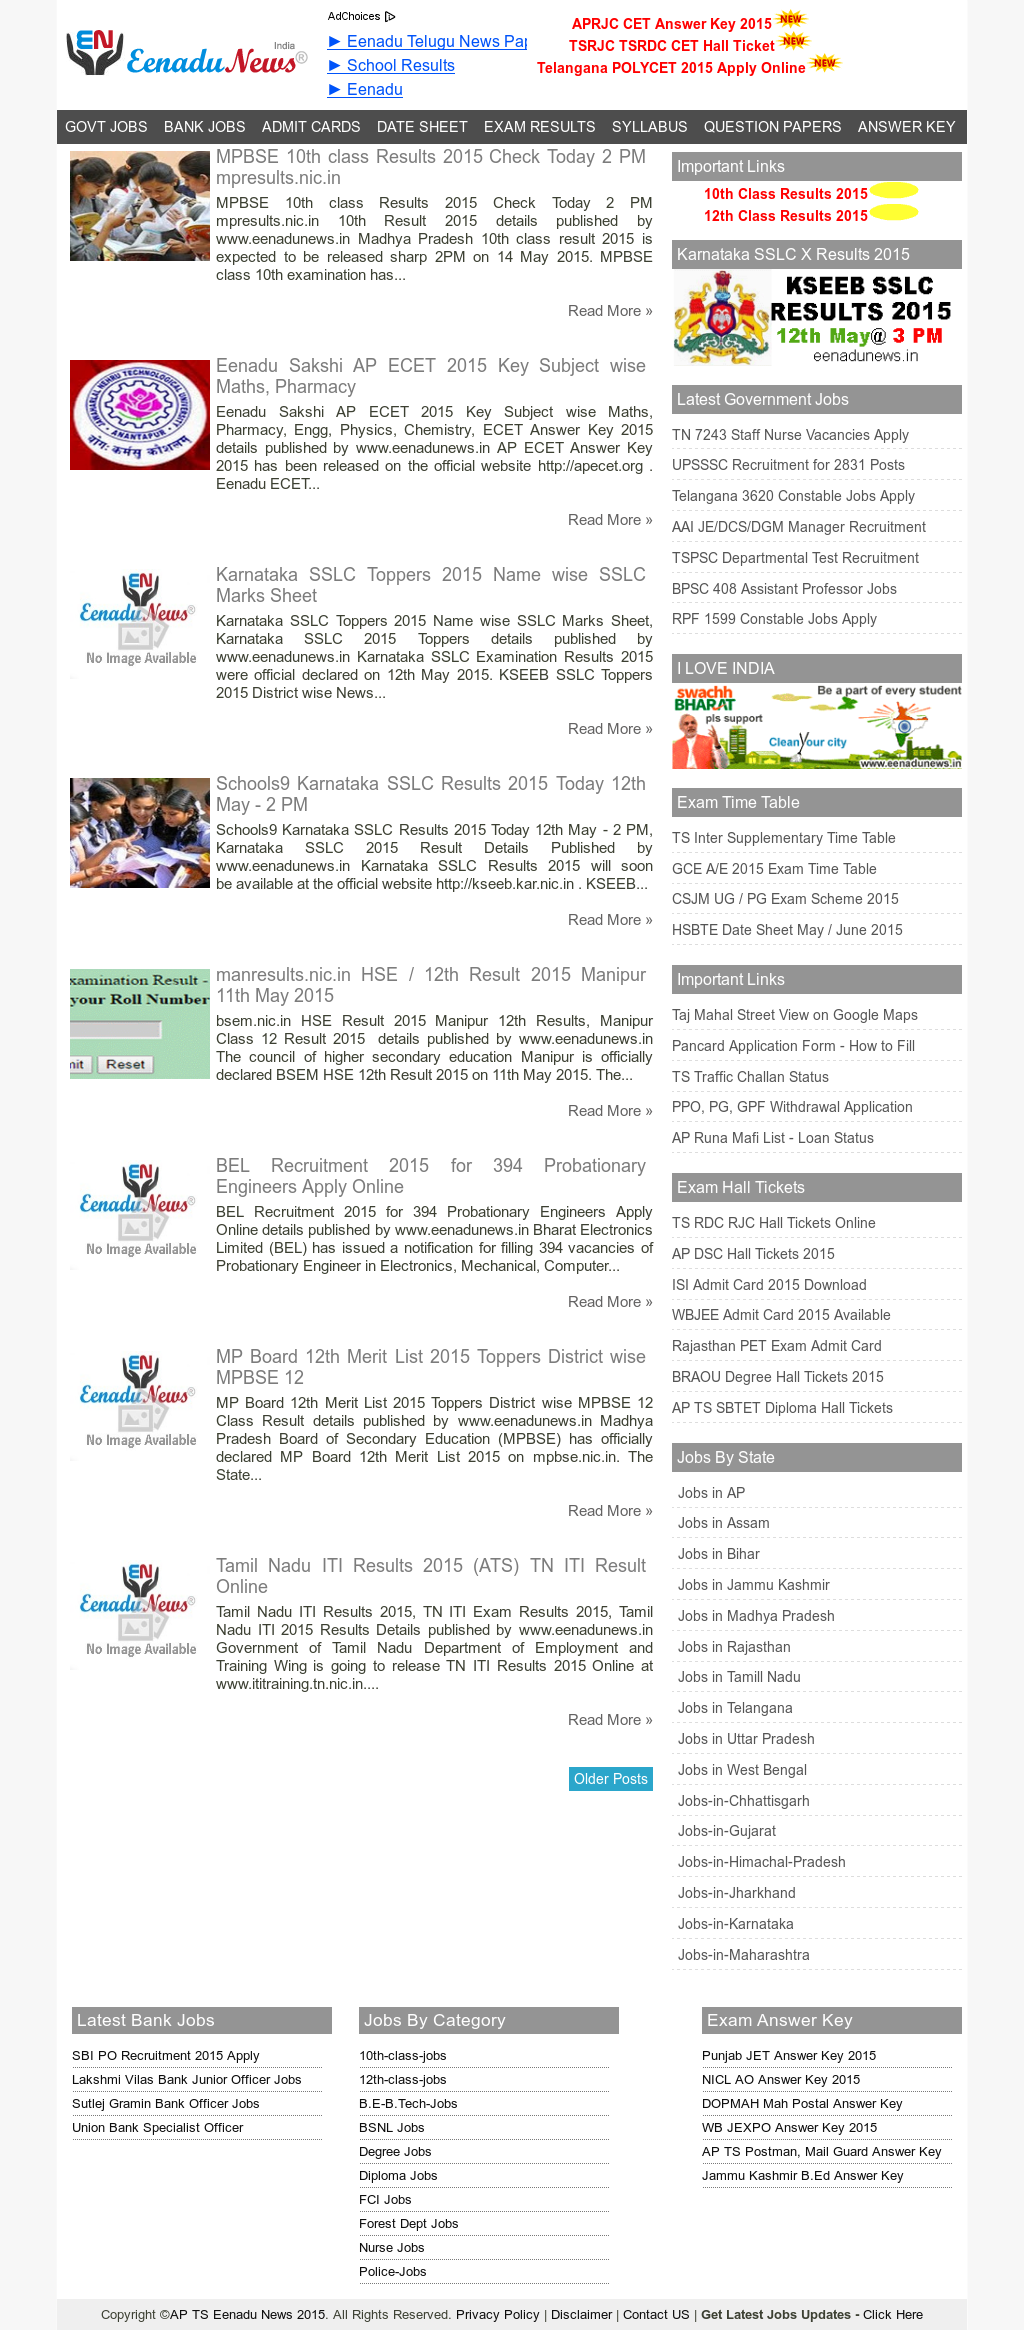 Eenadu News Competitors, Revenue and Employees - Owler Company Profile